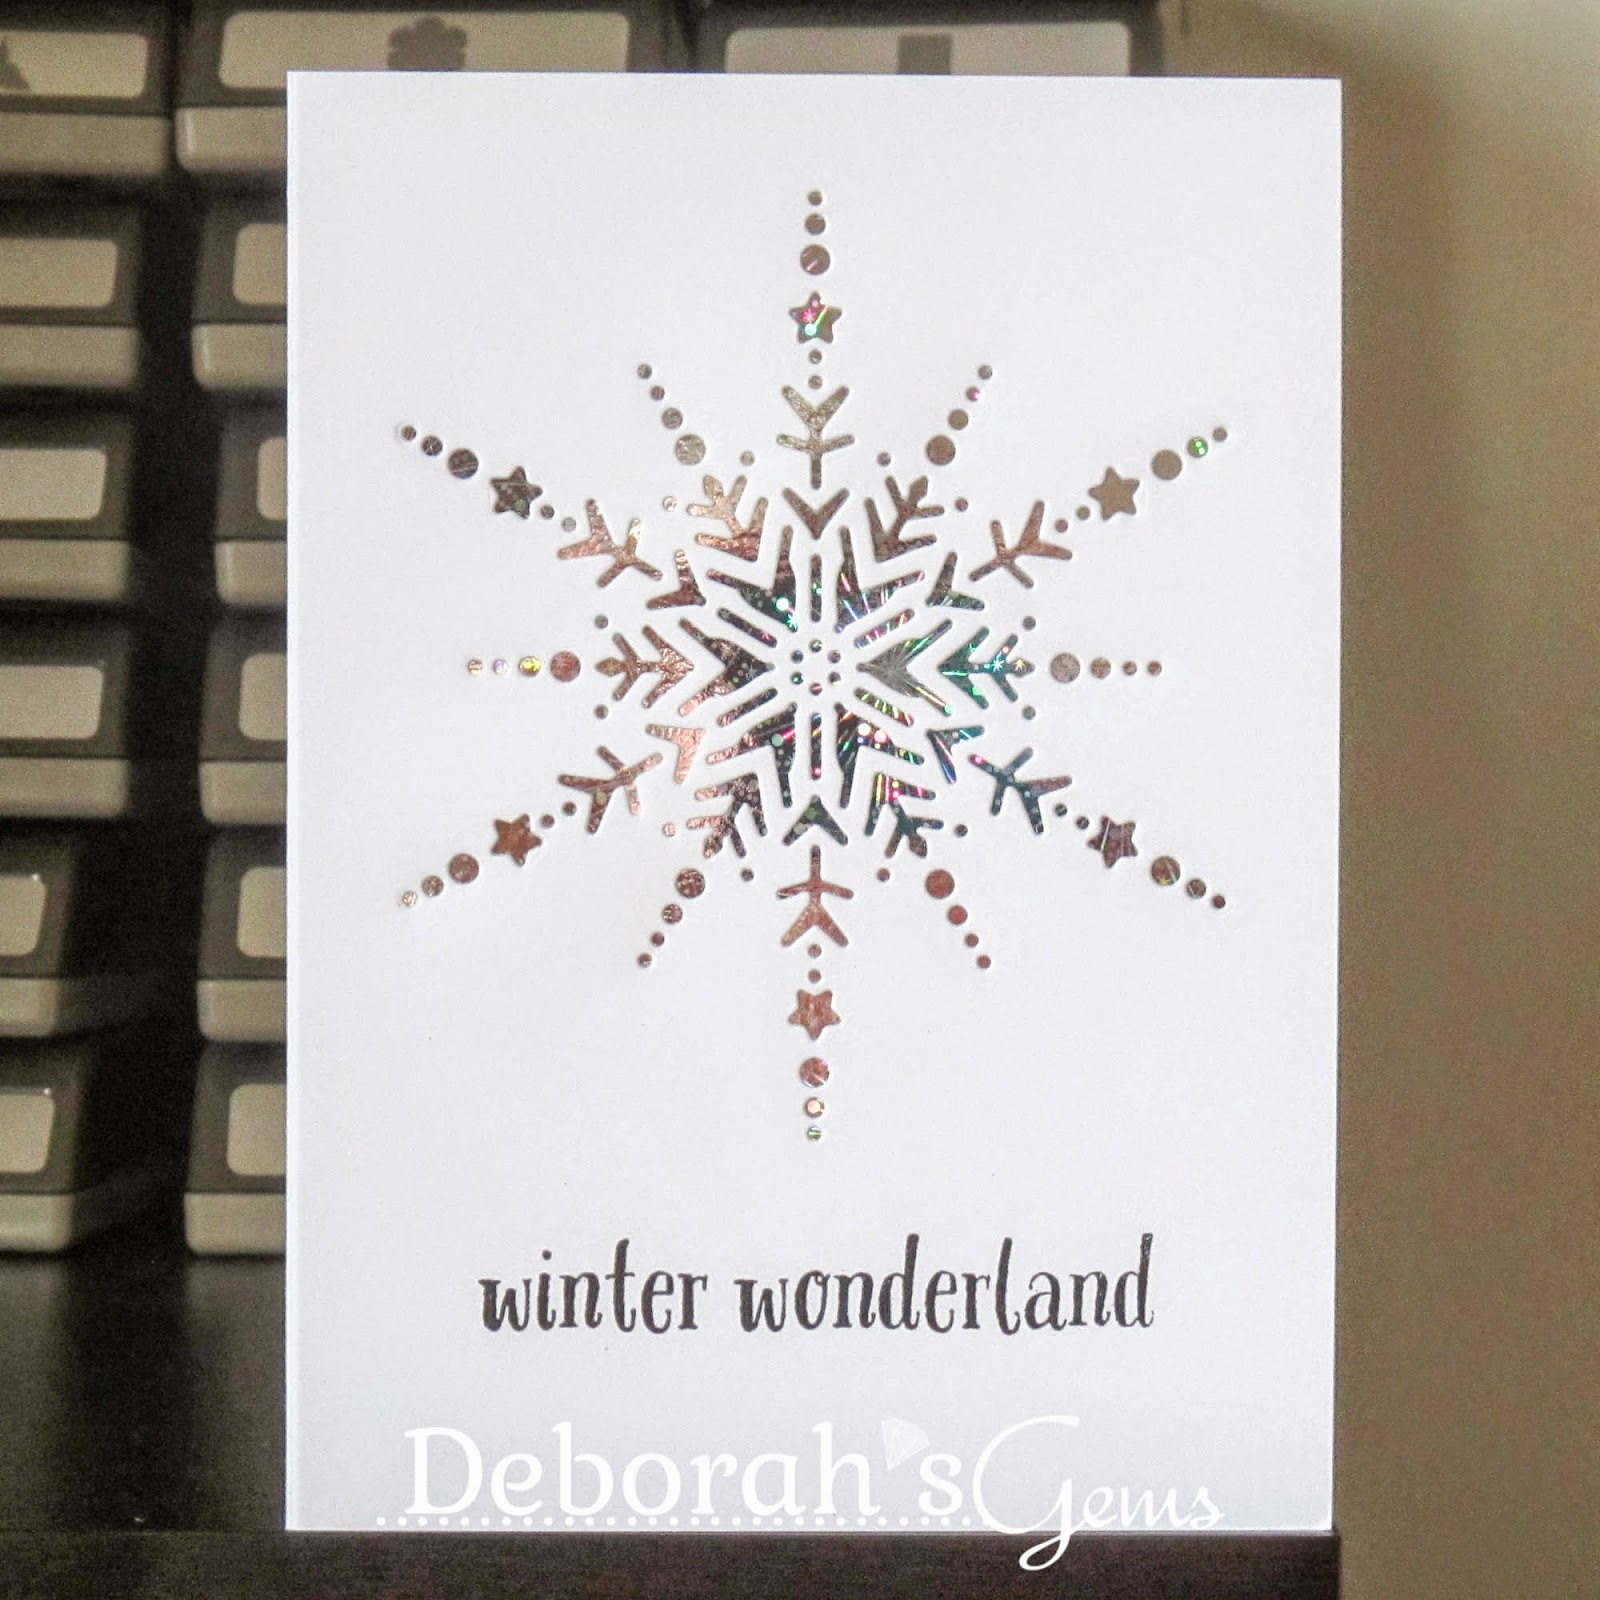 Winter Wonderland sq - photo by Deborah Frings - Deborah's Gems